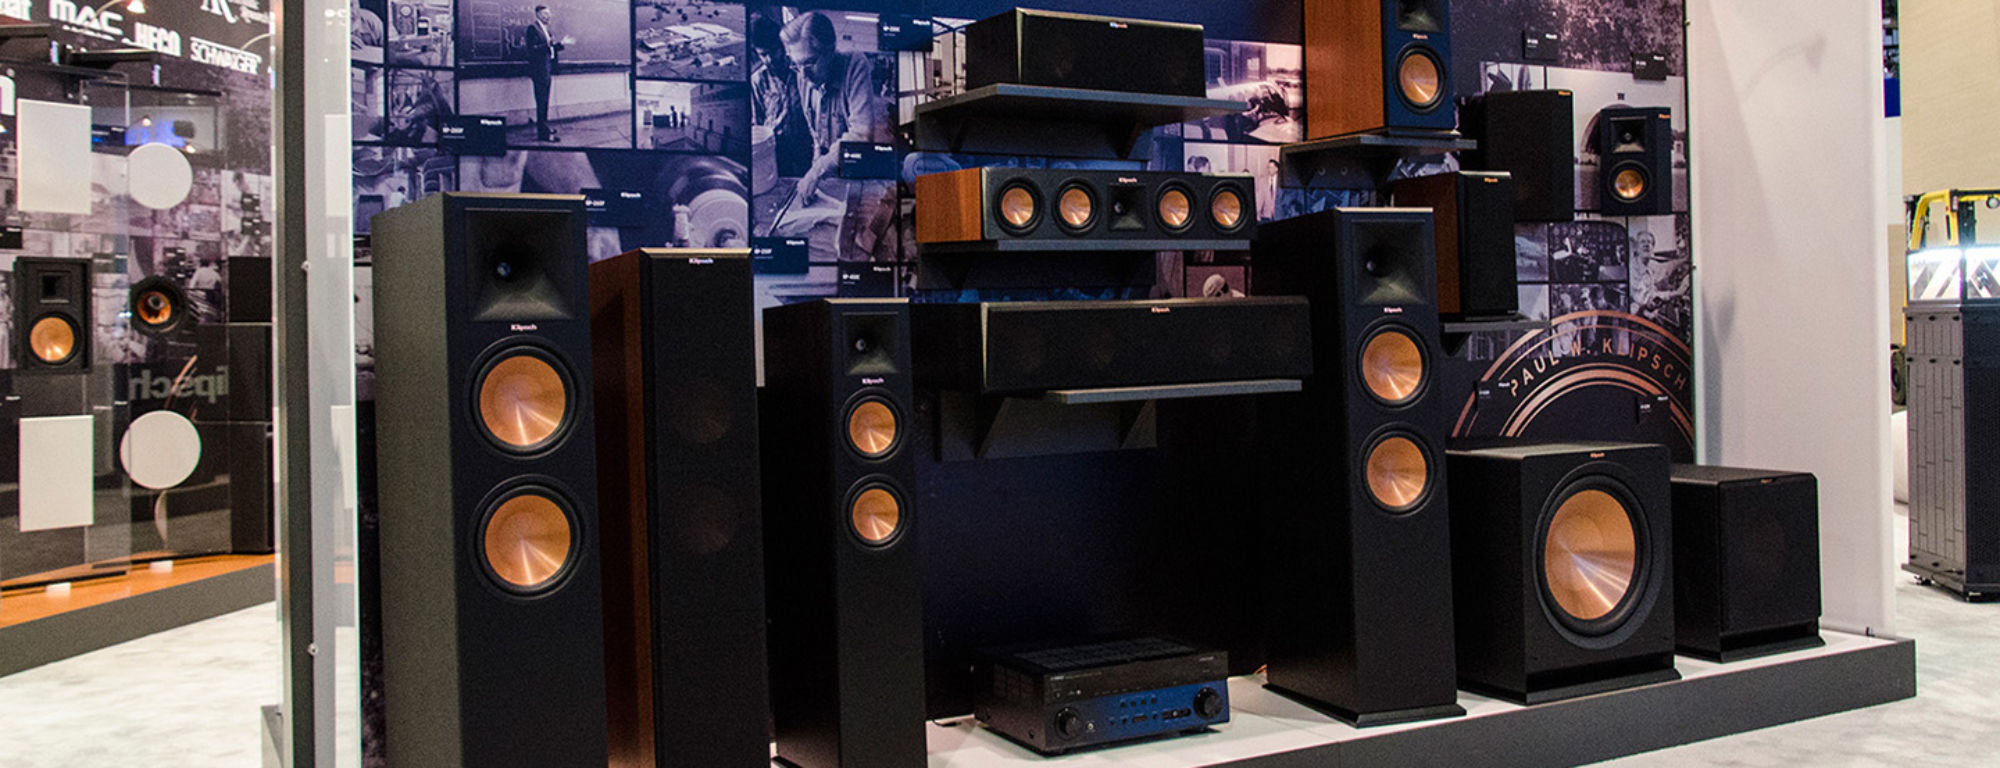 Klipsch wireless speaker series